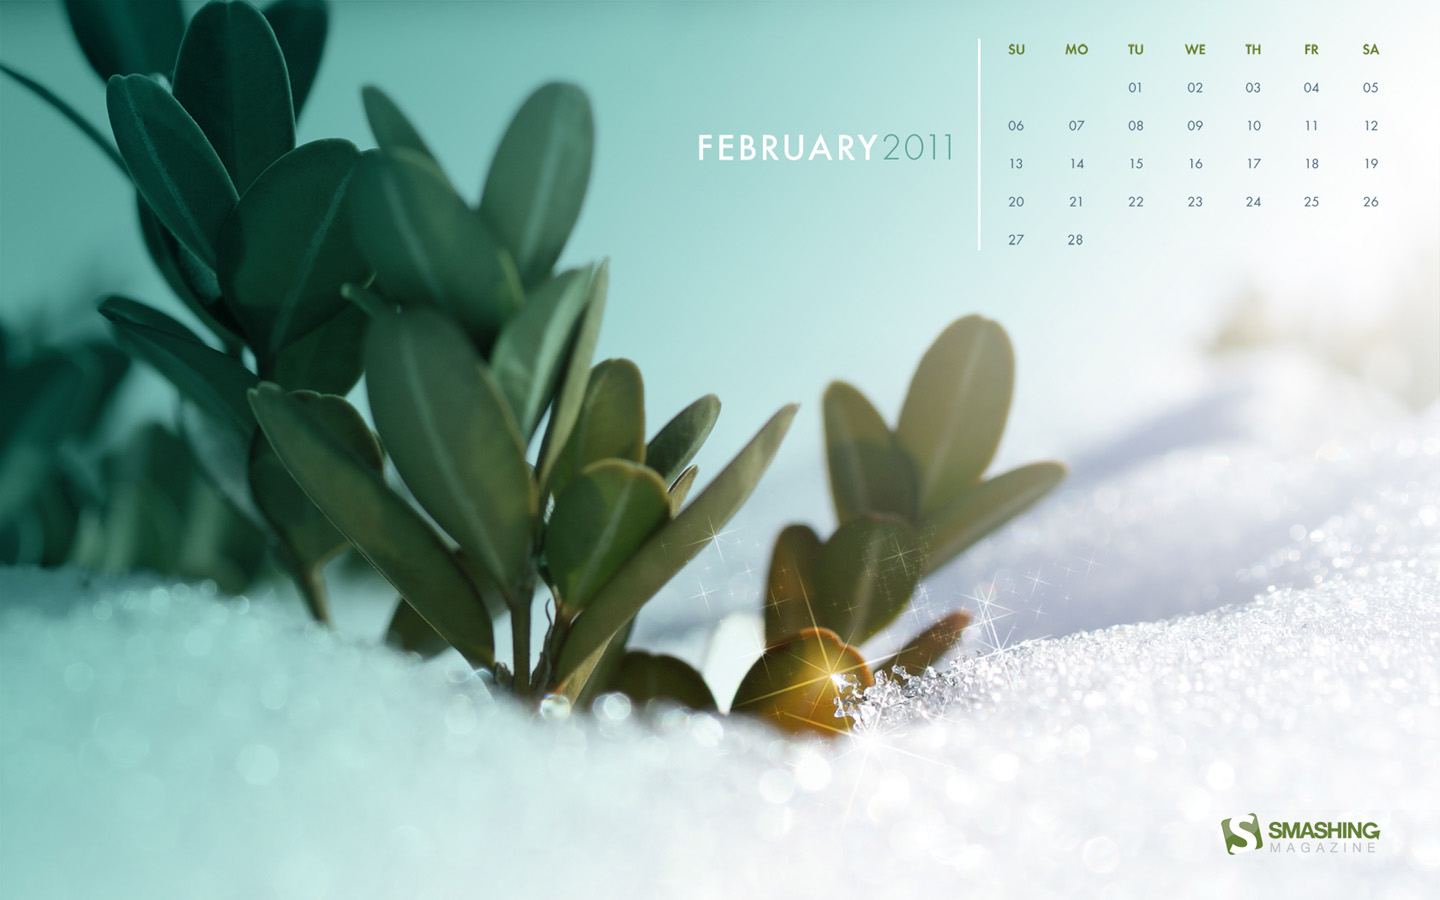 Calendar Wallpaper of the month 20747